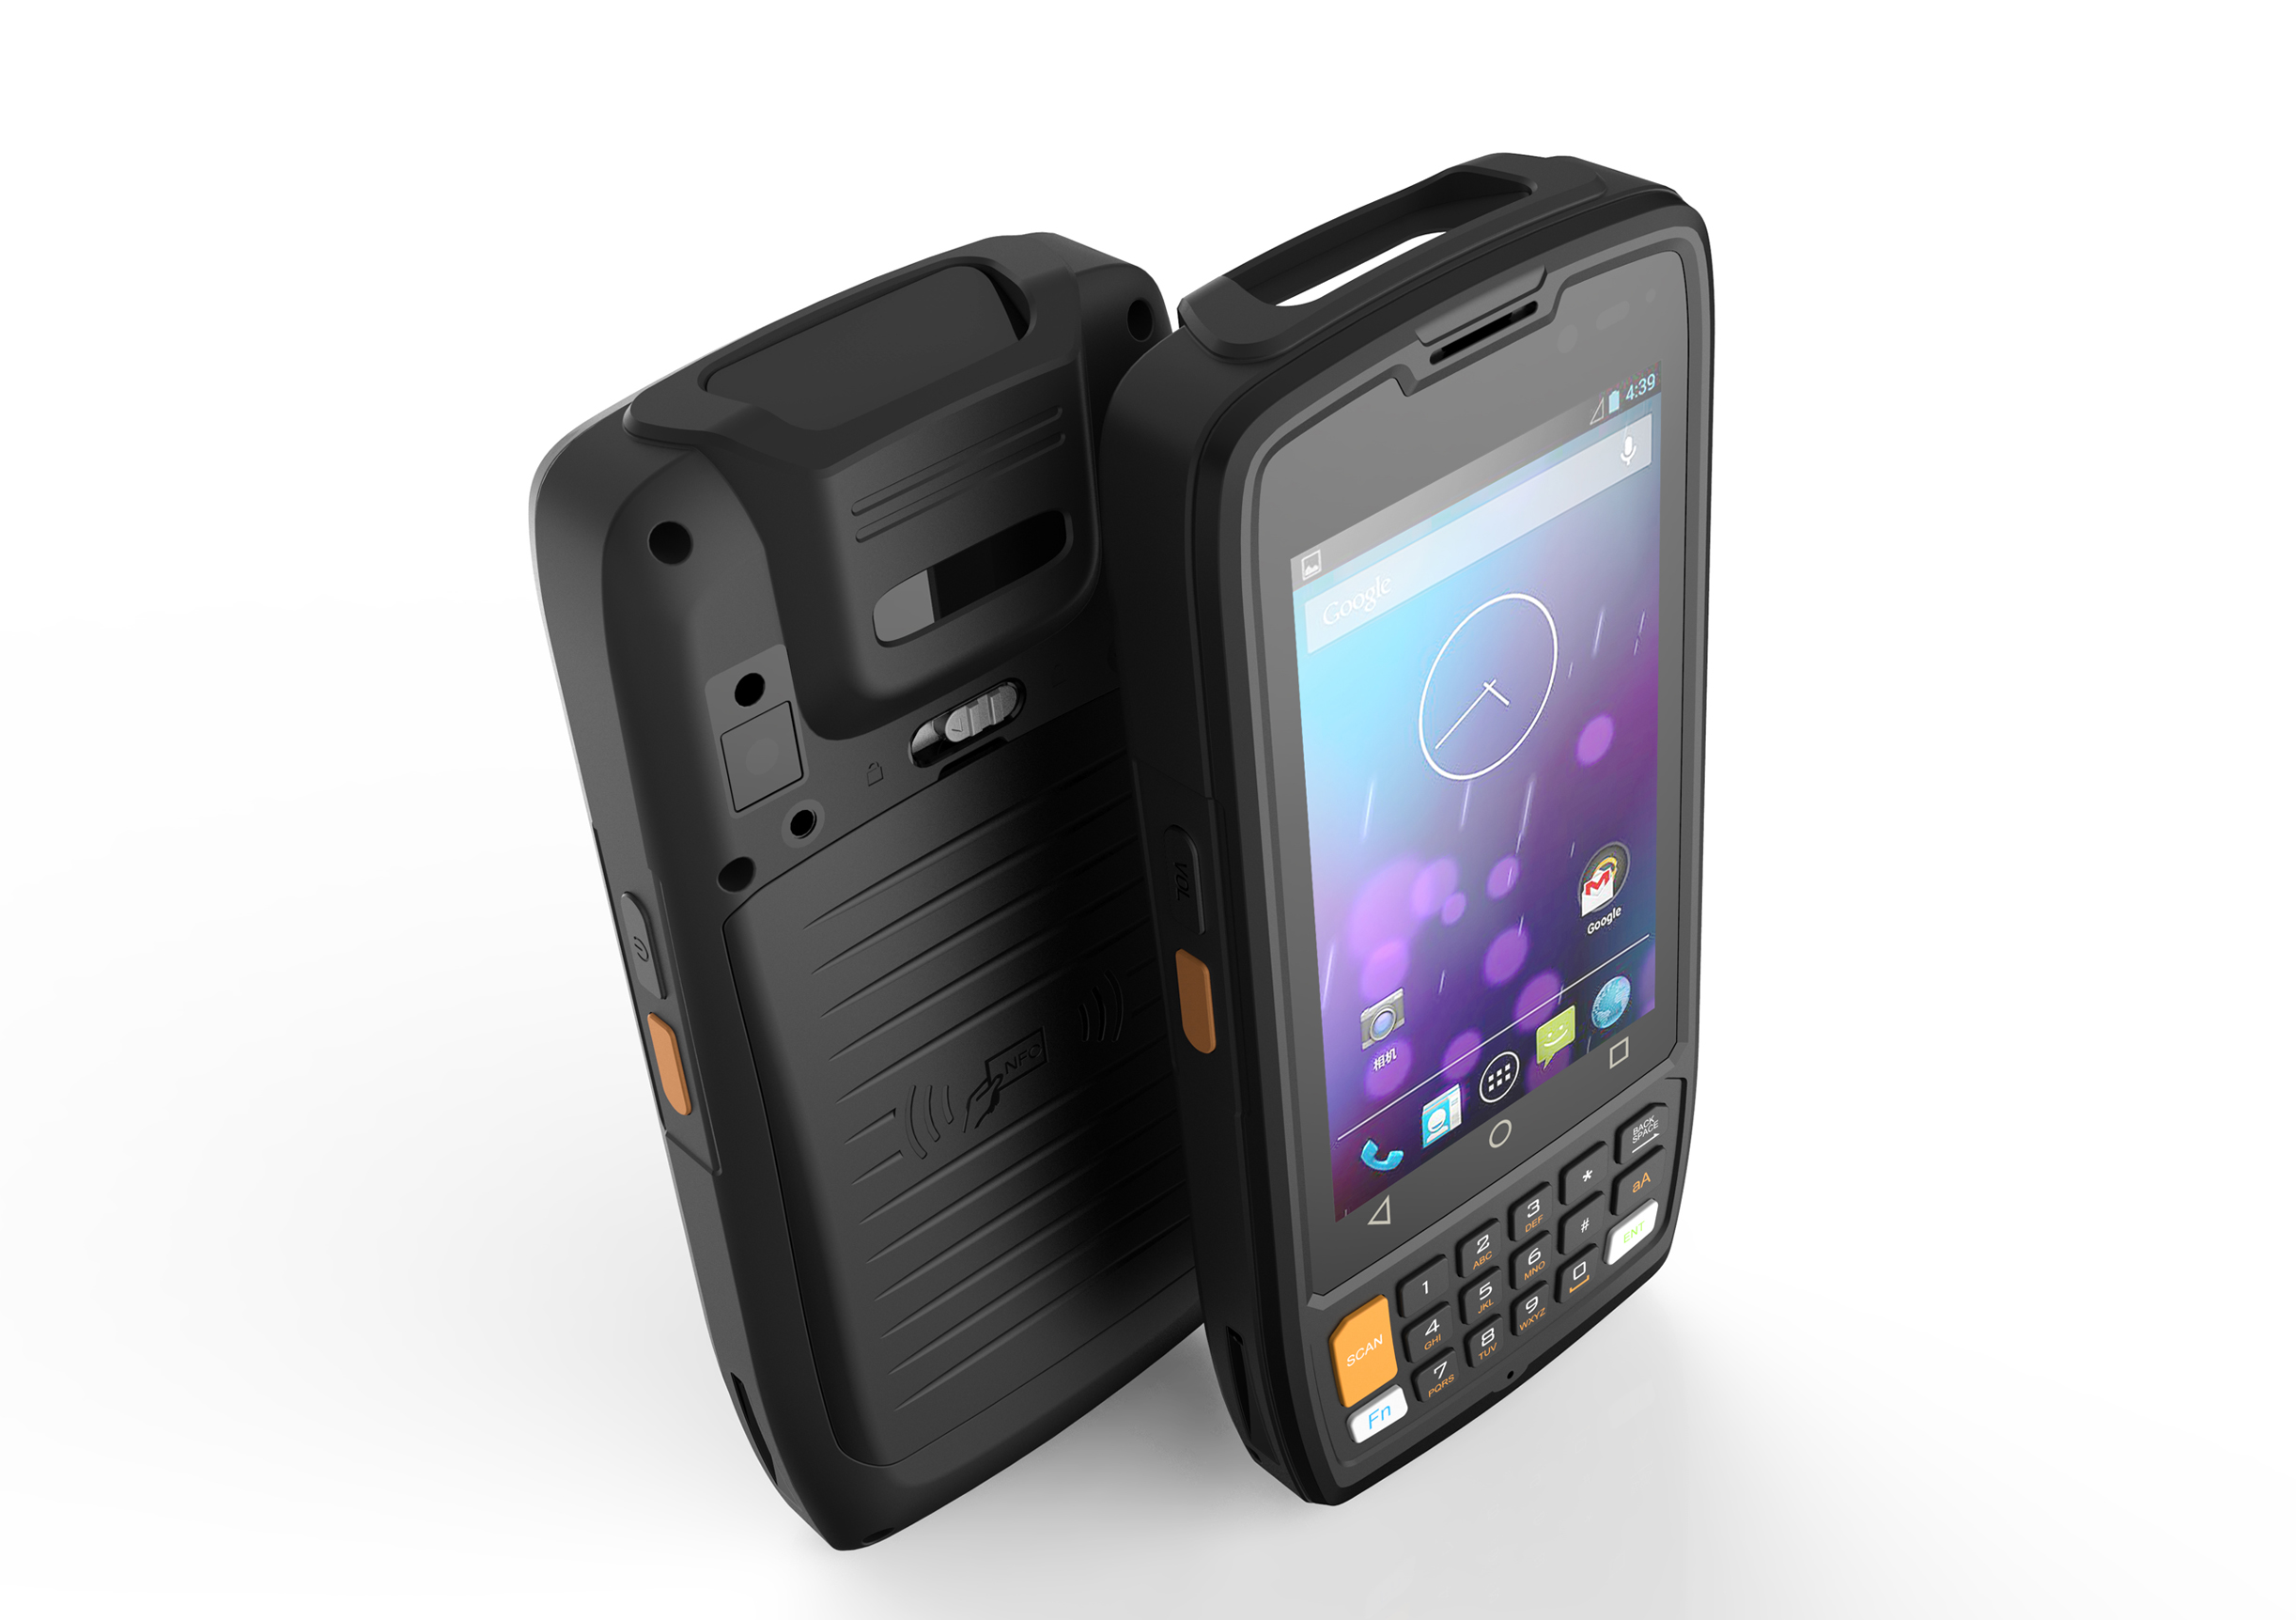 Handheld android device RuggedT H4 front and back look